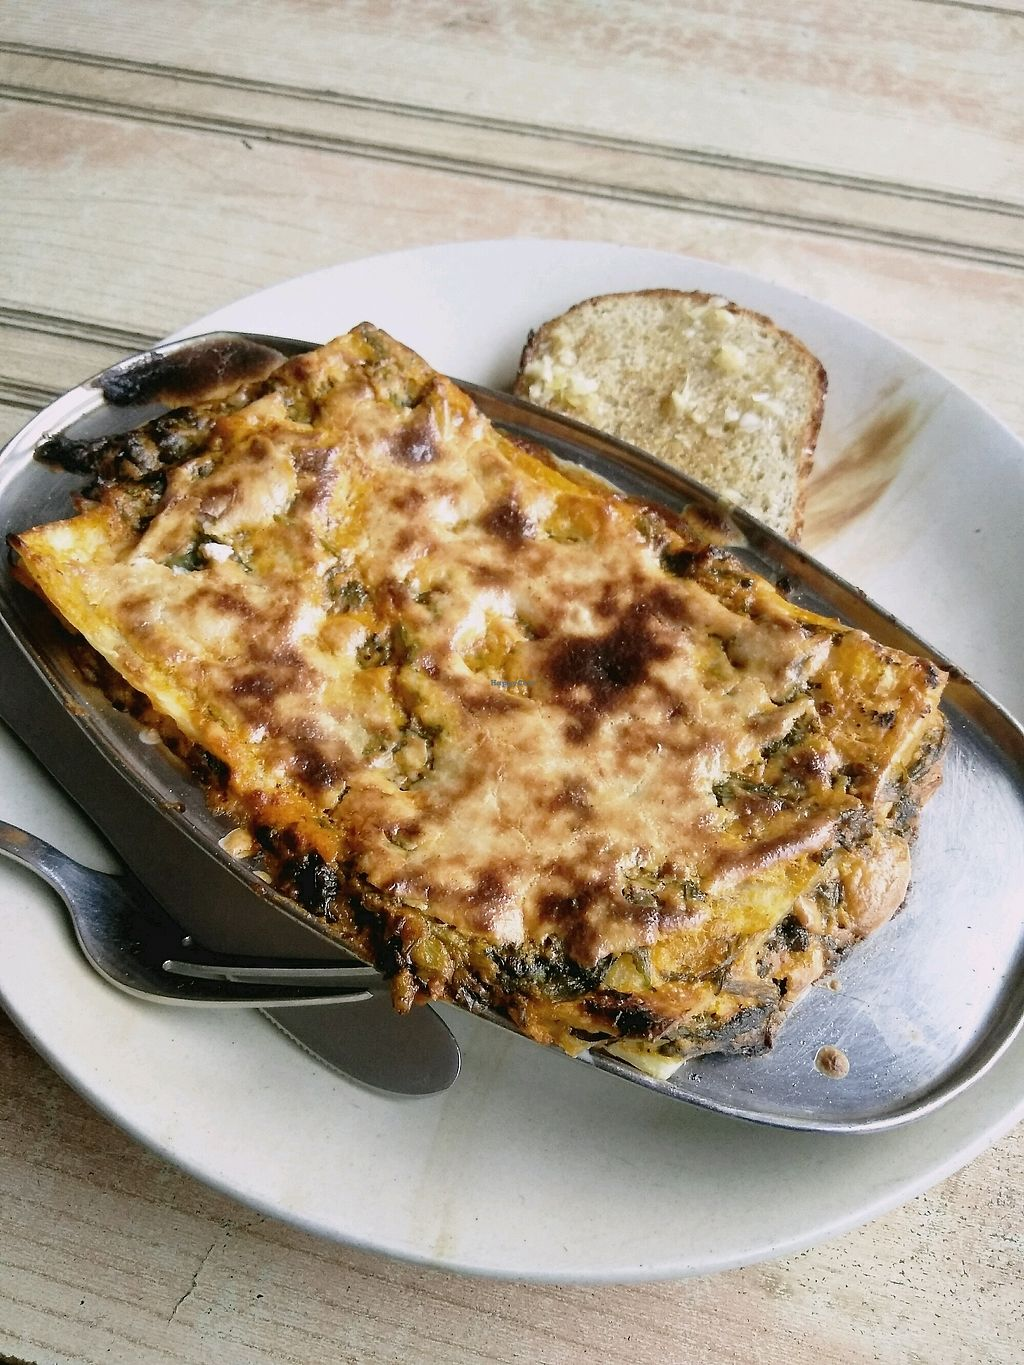 "Photo of TATTV Cafe  by <a href=""/members/profile/dp291185"">dp291185</a> <br/>Vegan Lasagna : creamy tomato sauce and spinach fillings <br/> November 29, 2017  - <a href='/contact/abuse/image/81822/330595'>Report</a>"